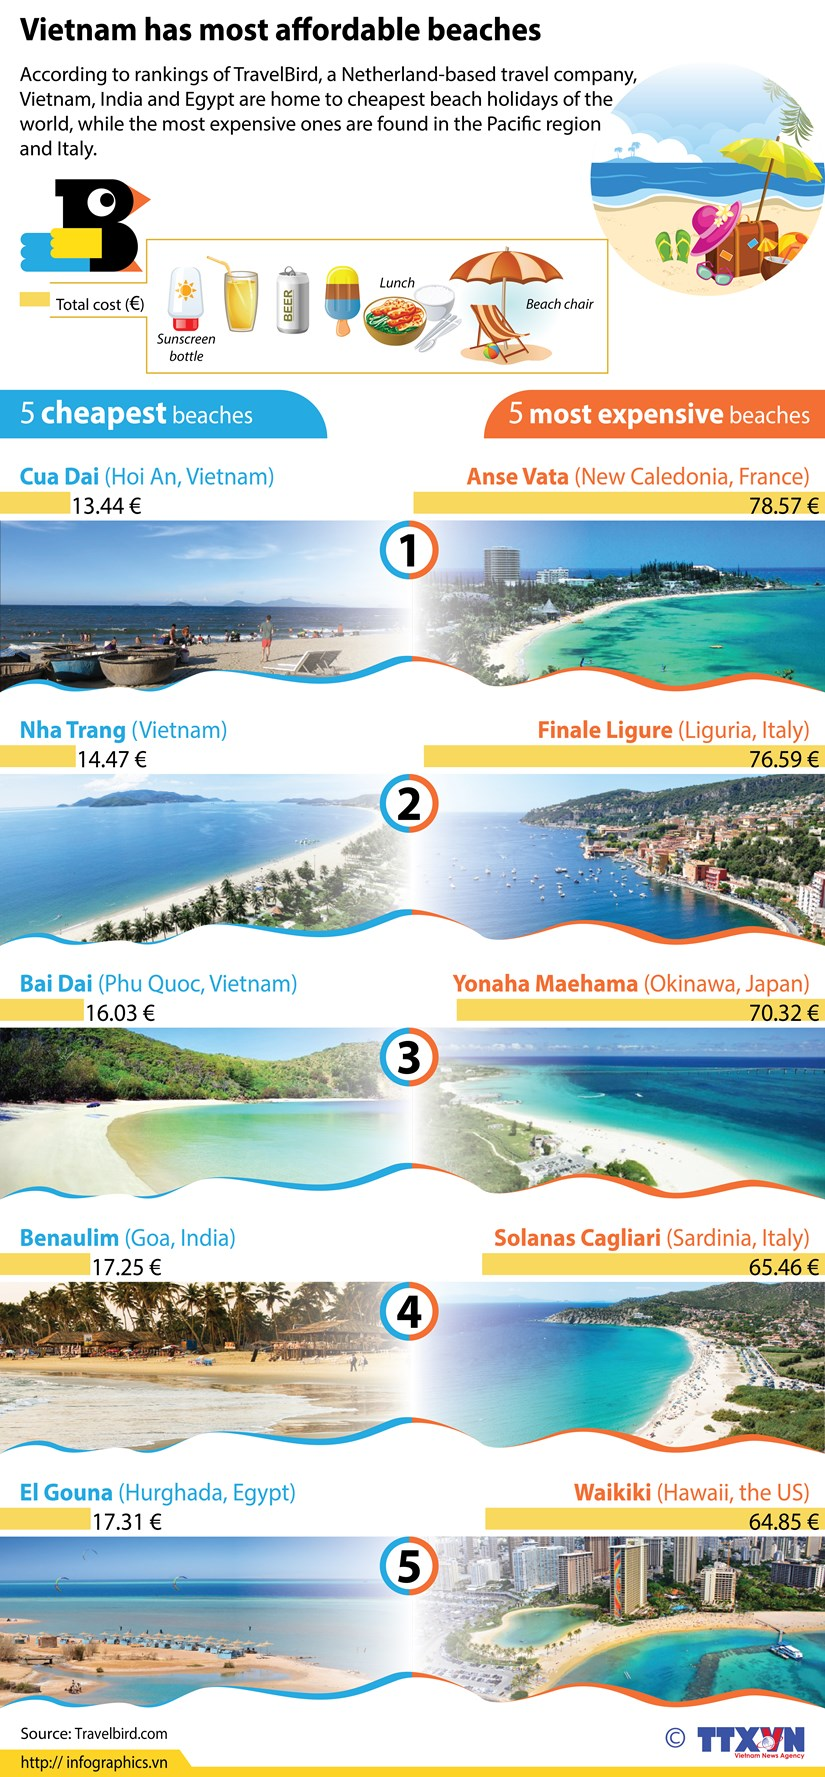 Vietnam has most affordable beaches hinh anh 1